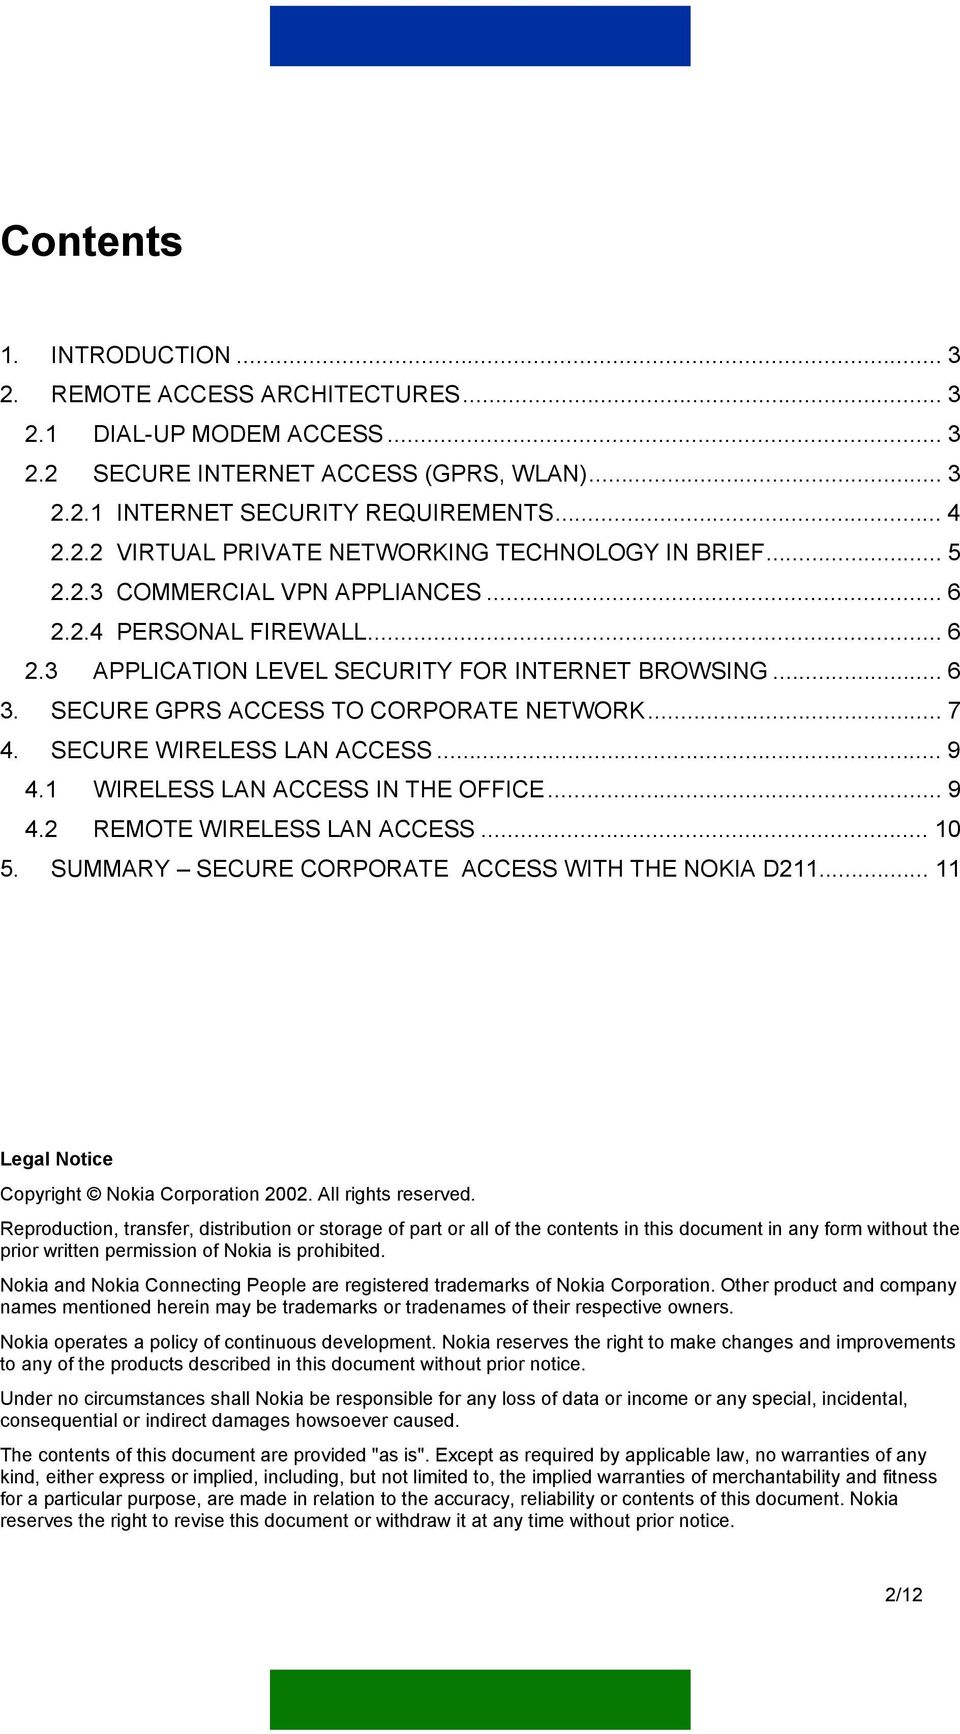 SECURE WIRELESS LAN ACCESS... 9 4.1 WIRELESS LAN ACCESS IN THE OFFICE... 9 4.2 REMOTE WIRELESS LAN ACCESS... 10 5. SUMMARY SECURE CORPORATE ACCESS WITH THE NOKIA D211.